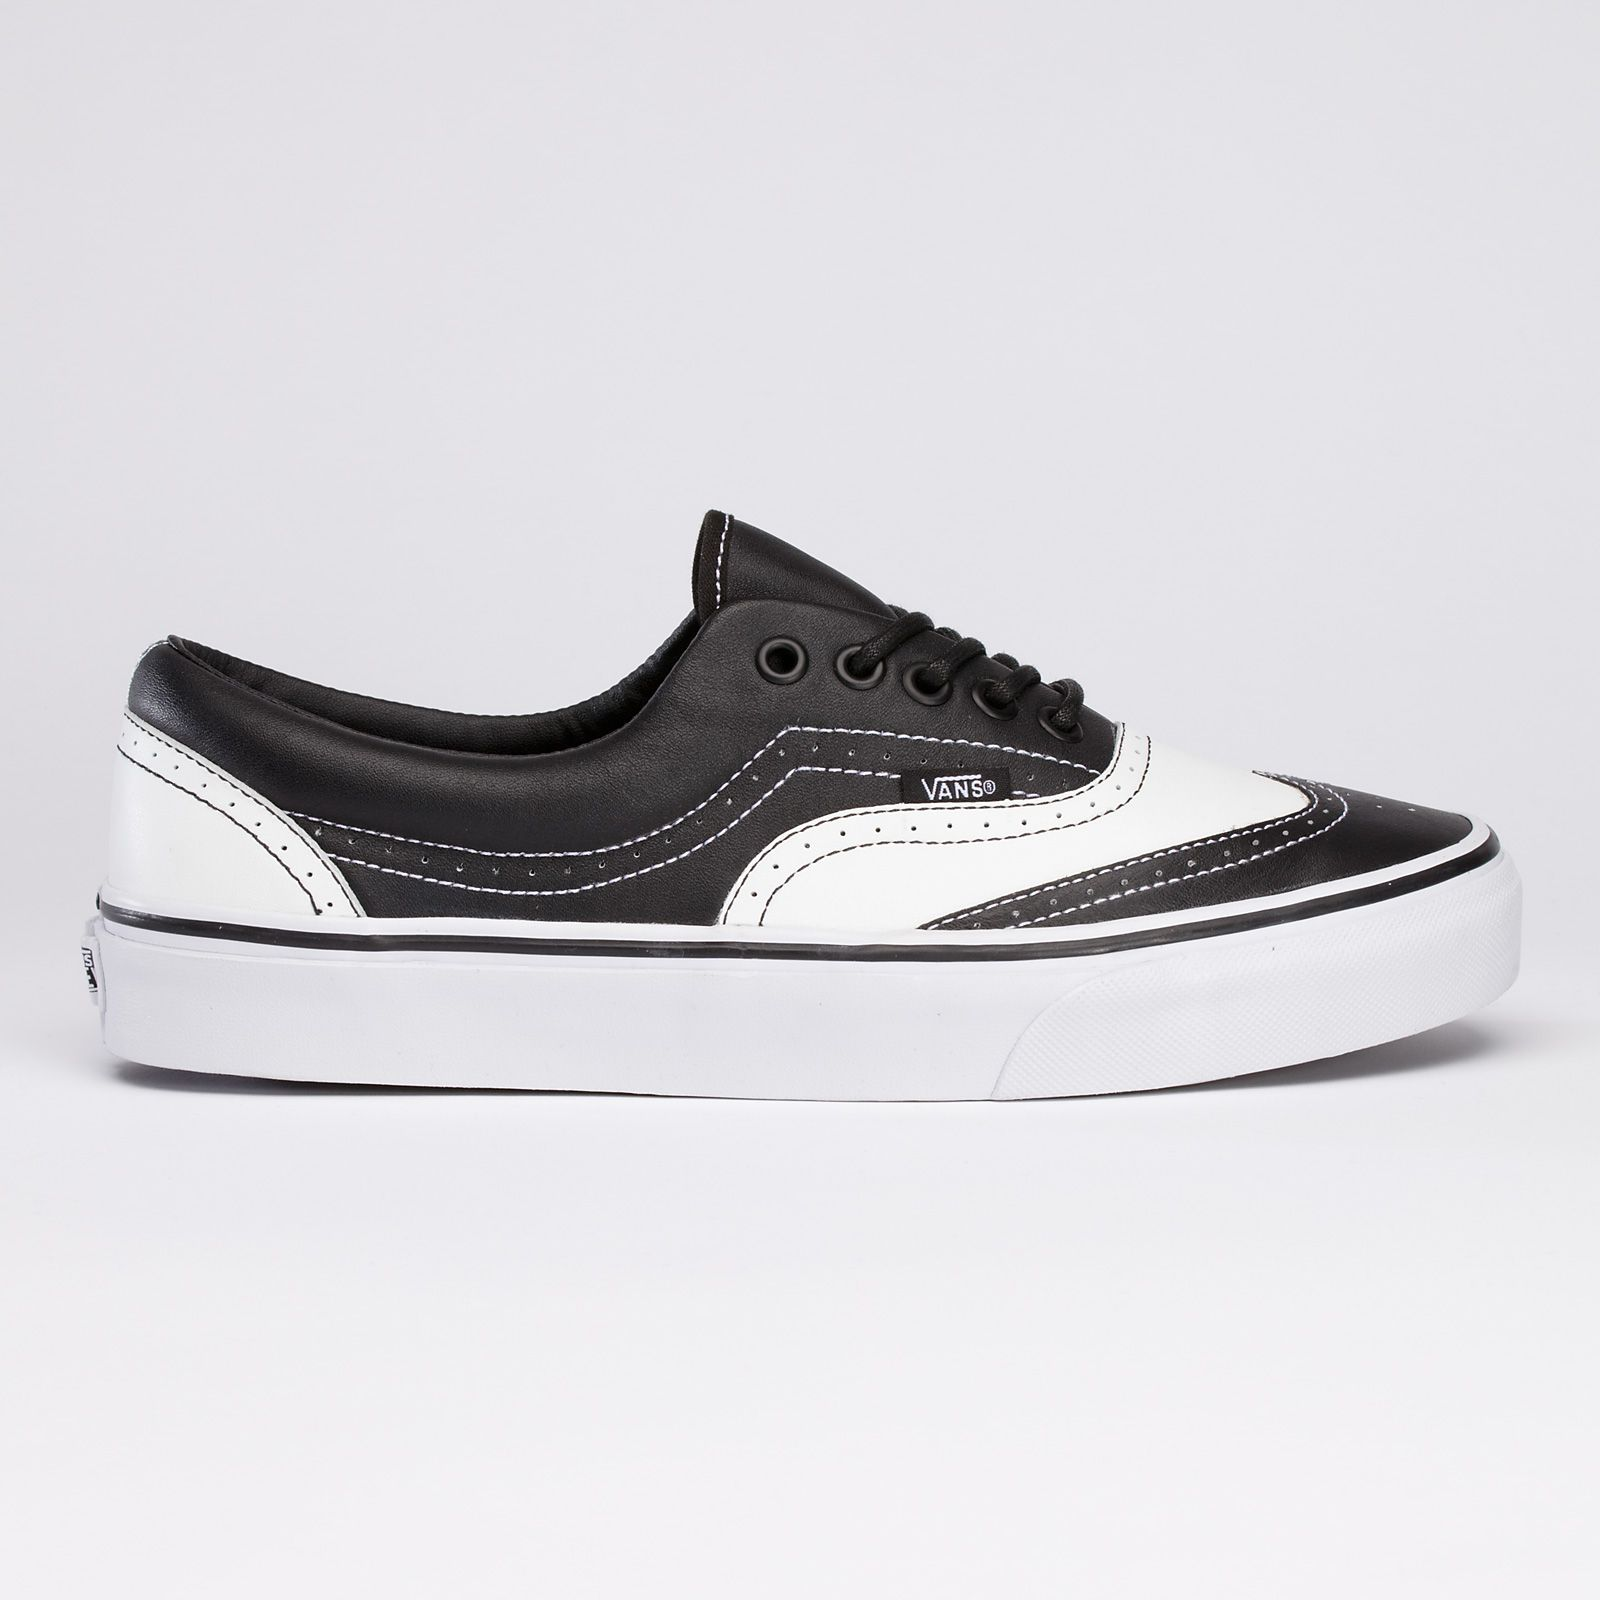 Fuck vans shoes them skateboard sneakers